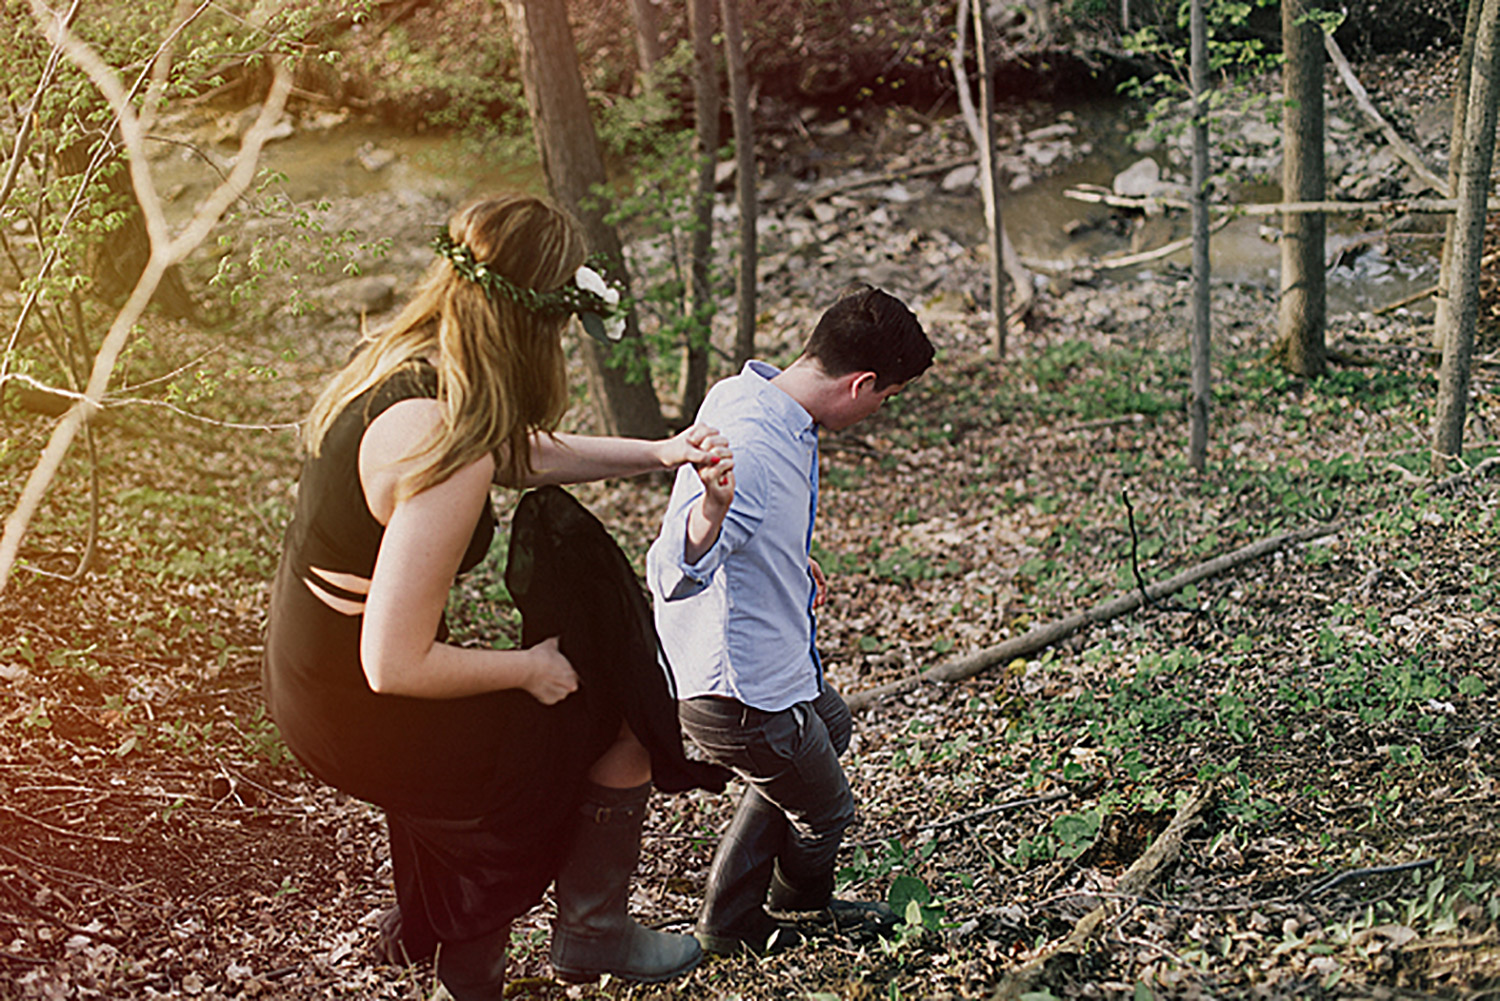 Short-Hills-Engagement-Vineyard-Bride-Photo-By-Ballad-Photography-006.jpg